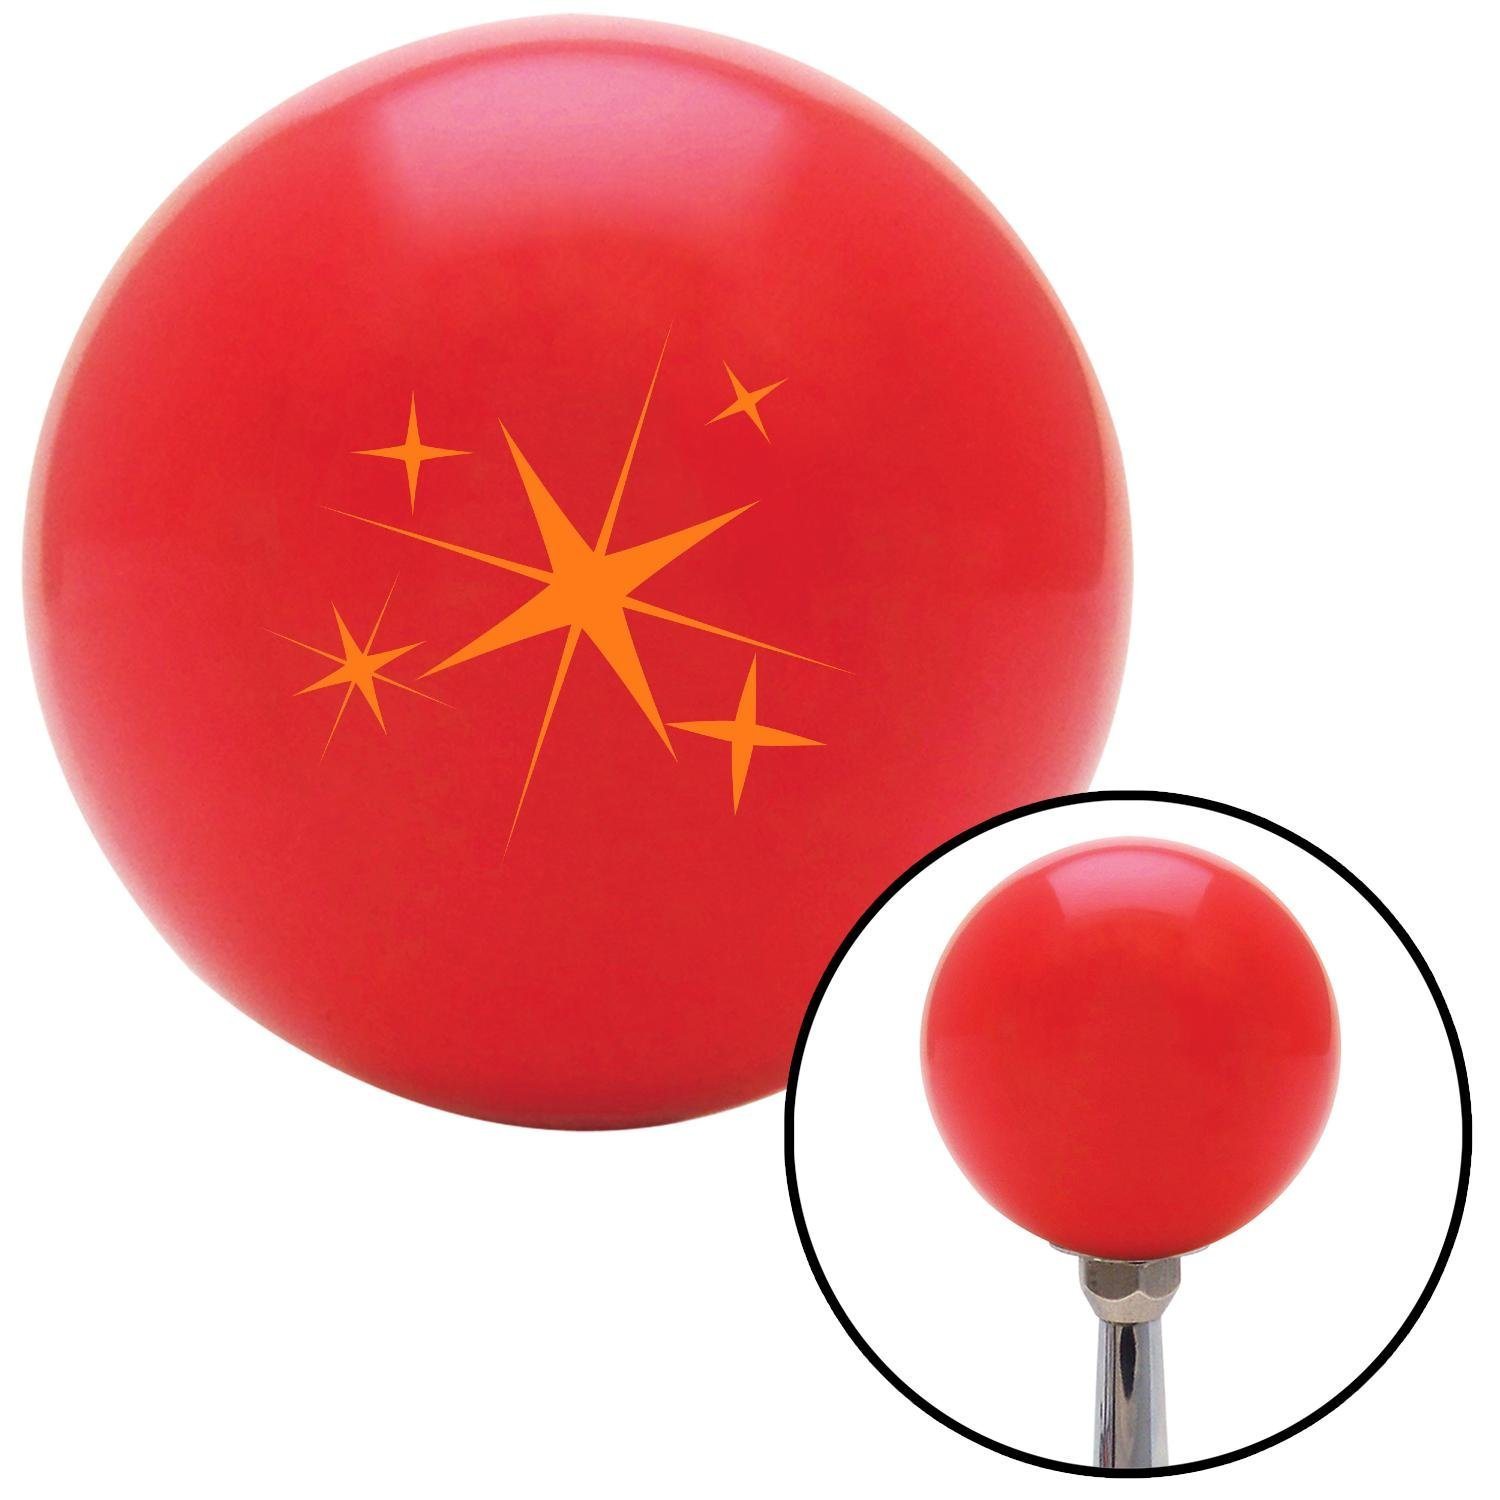 American Shifter 101344 Red Shift Knob with M16 x 1.5 Insert Orange Abstract Stars